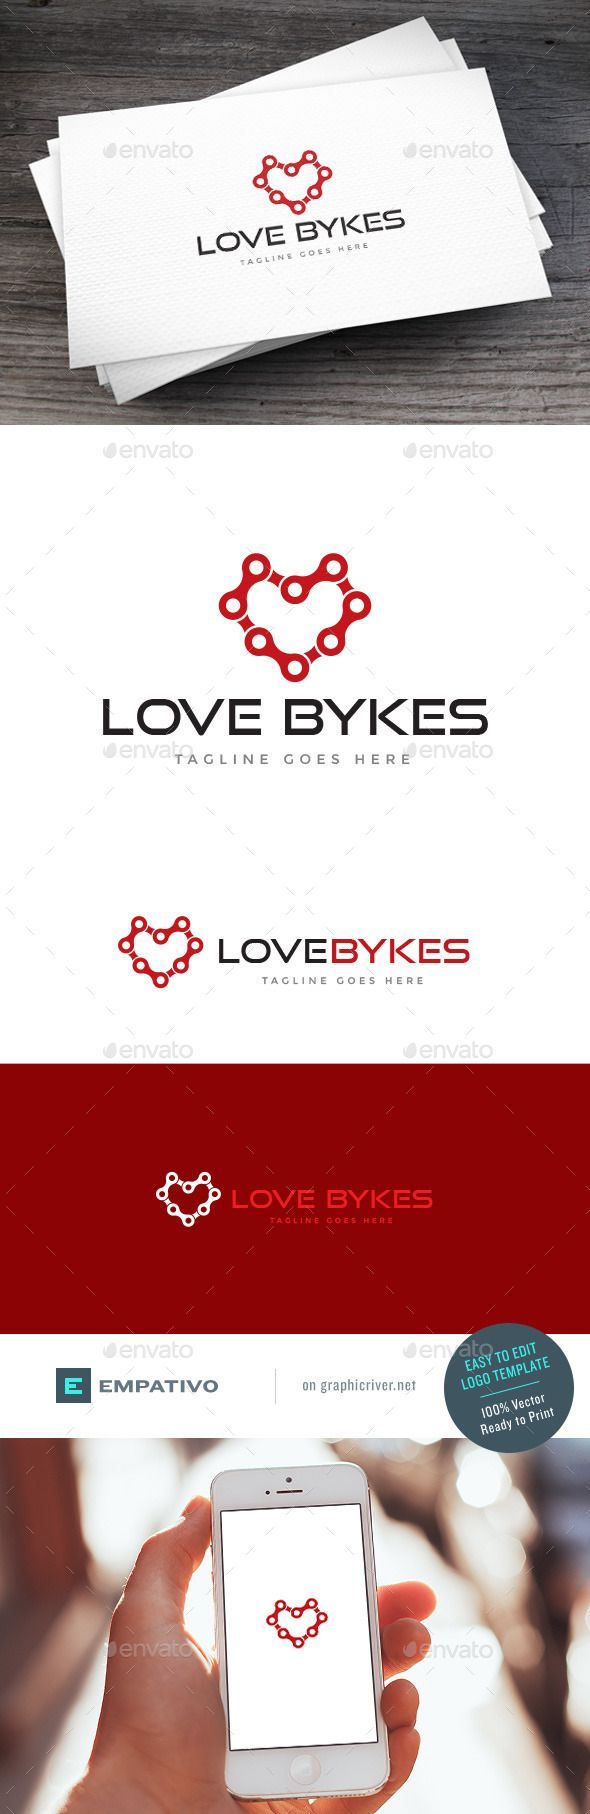 84 best a bike logo templates images on pinterest font logo love bykes logo template biocorpaavc Images